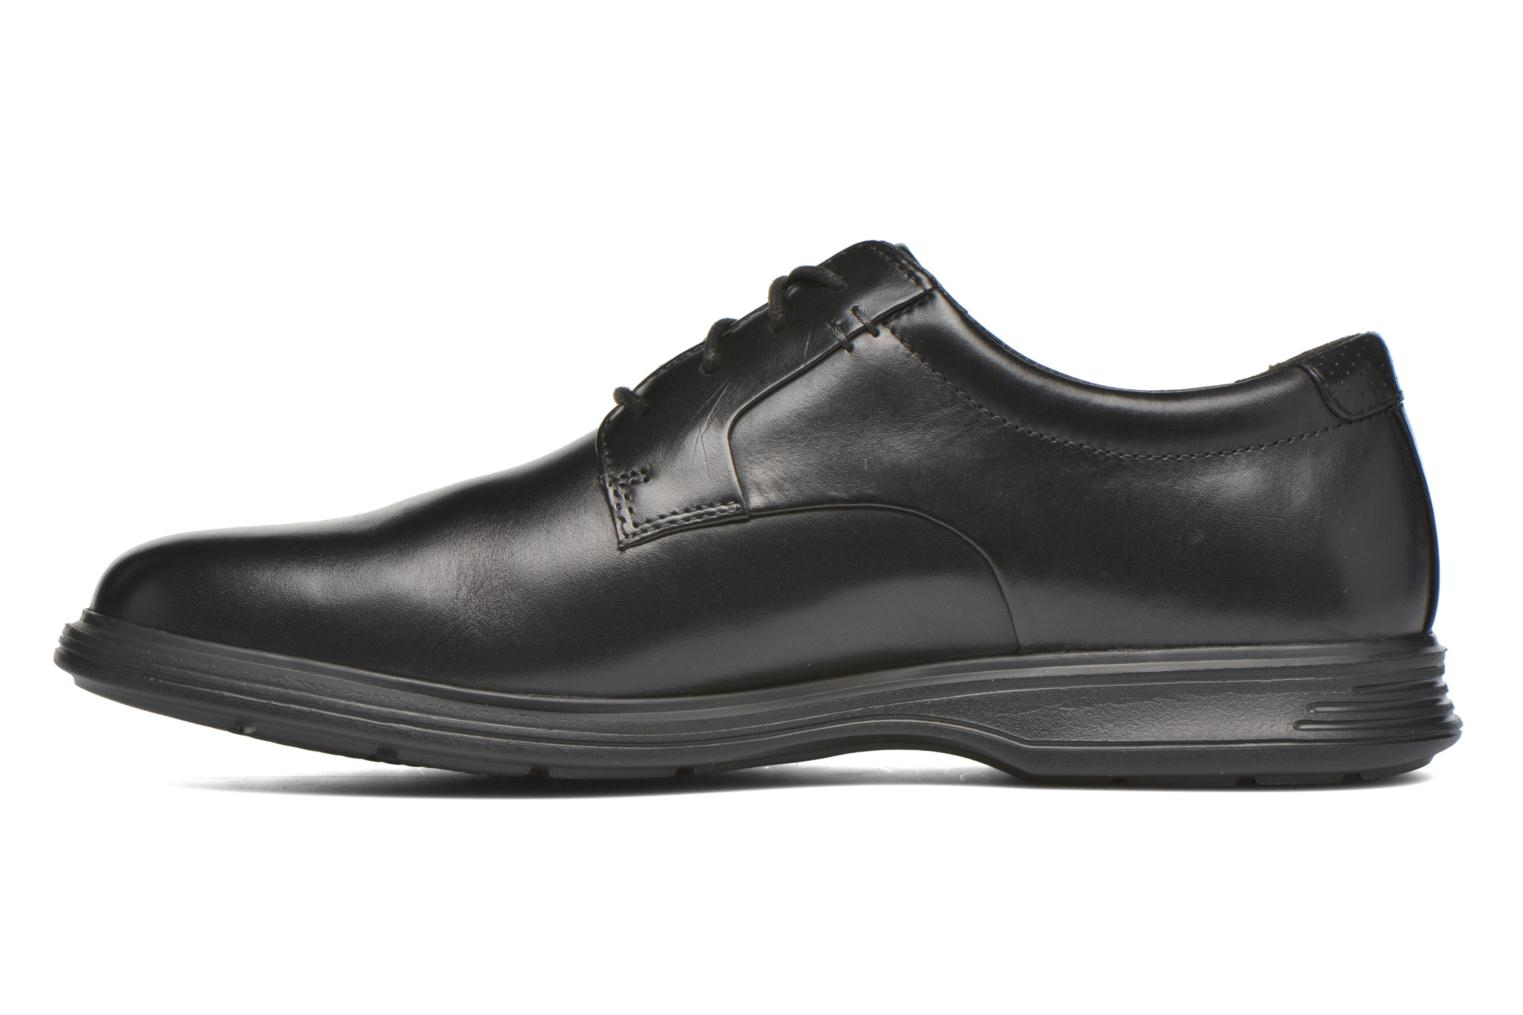 Zapatos con cordones Rockport DP2 Light Plaintoe Ox Negro vista de frente